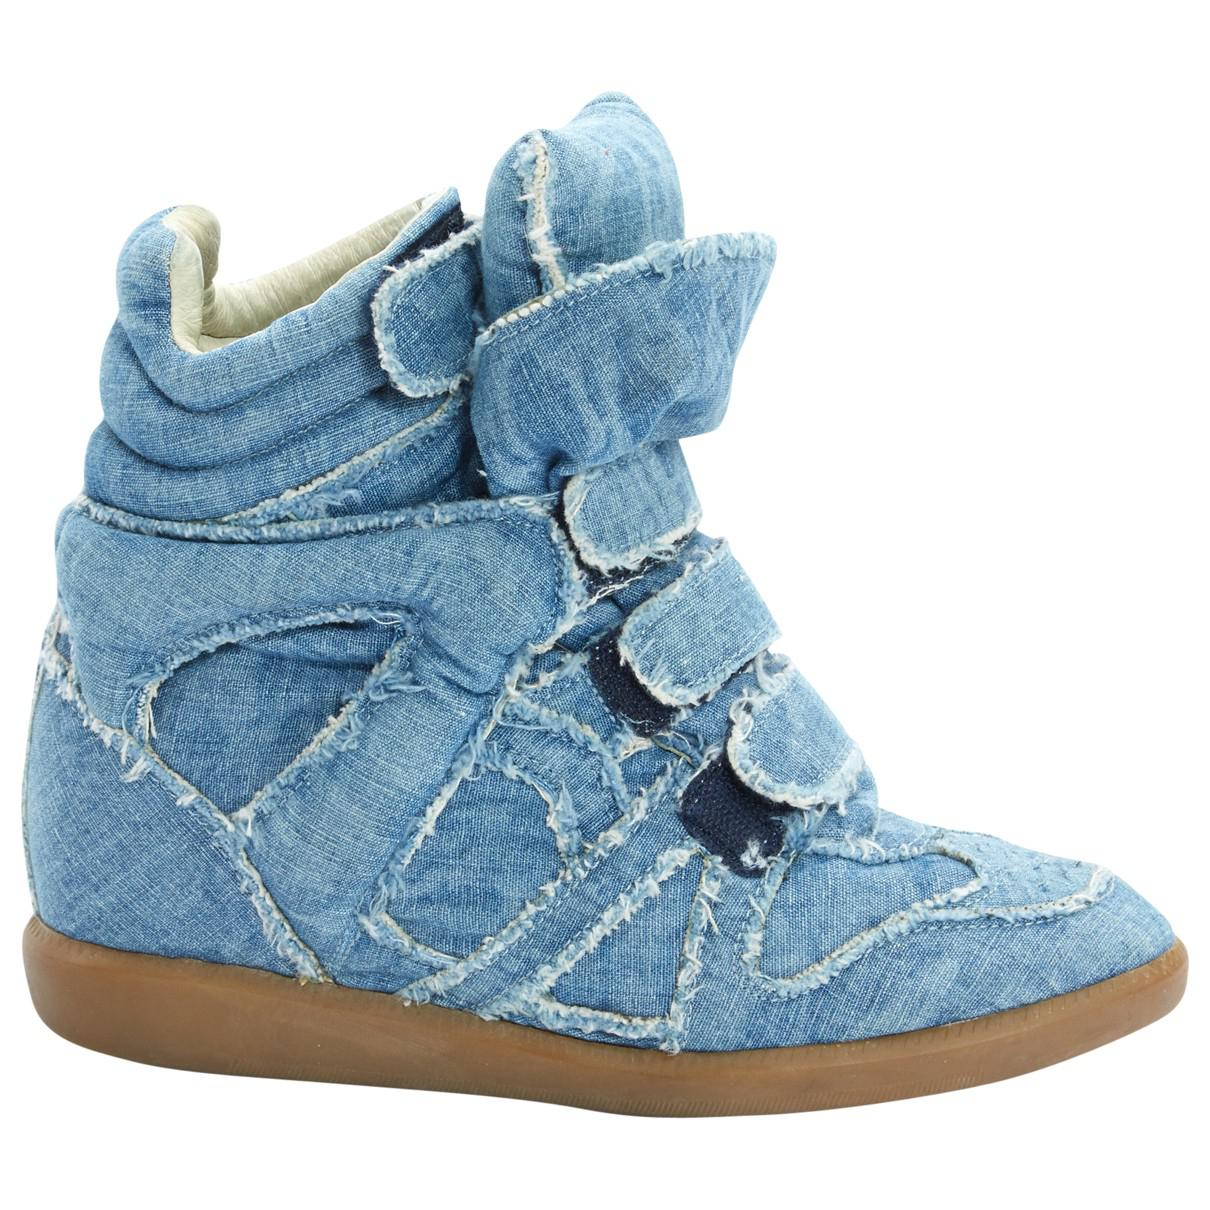 Pre-owned - Beckett trainers Isabel Marant 0pJzMC